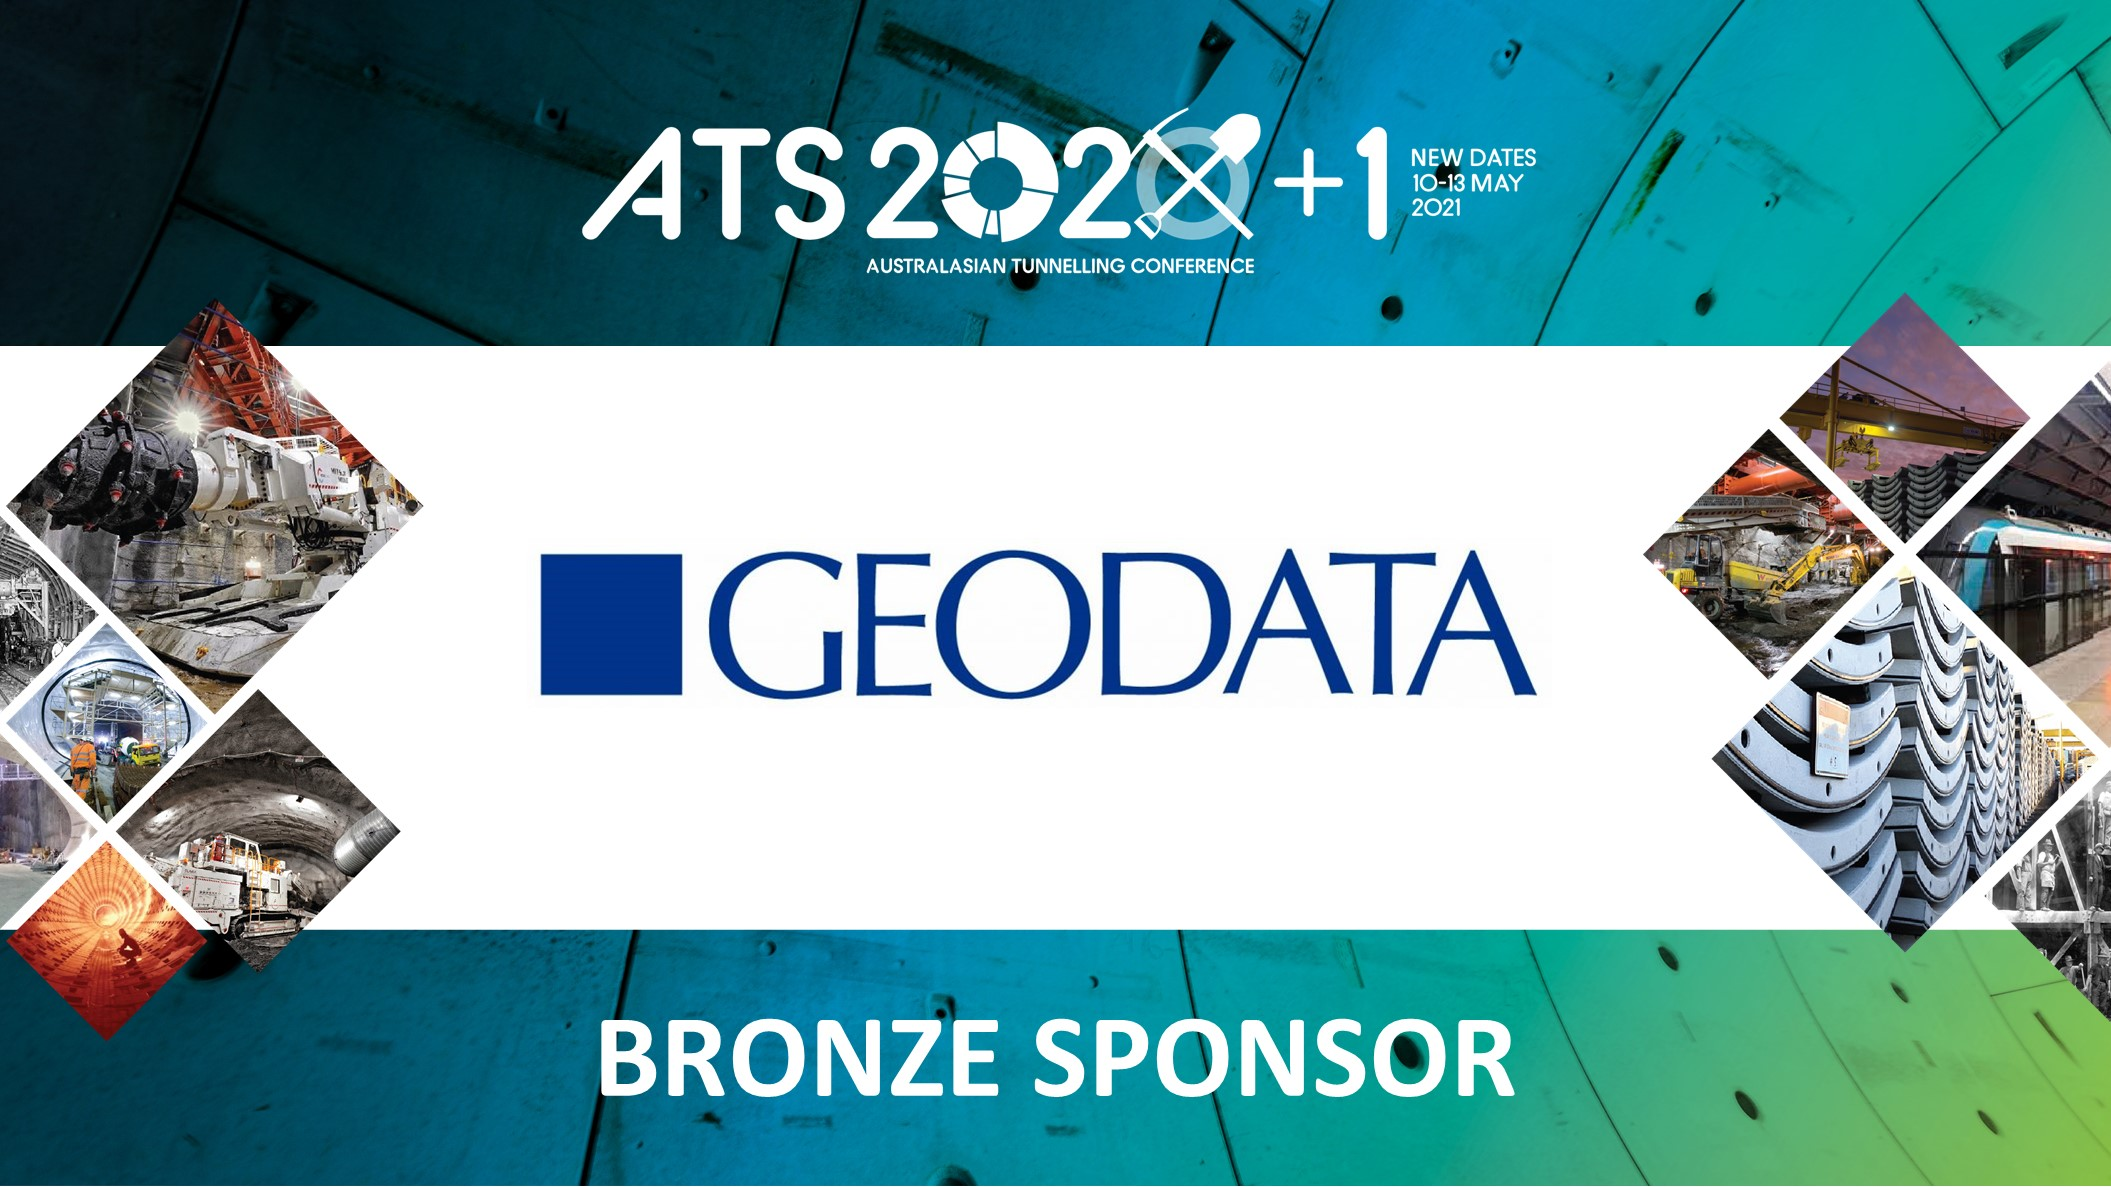 ATS2020+1 Australasian Tunnelling Conference